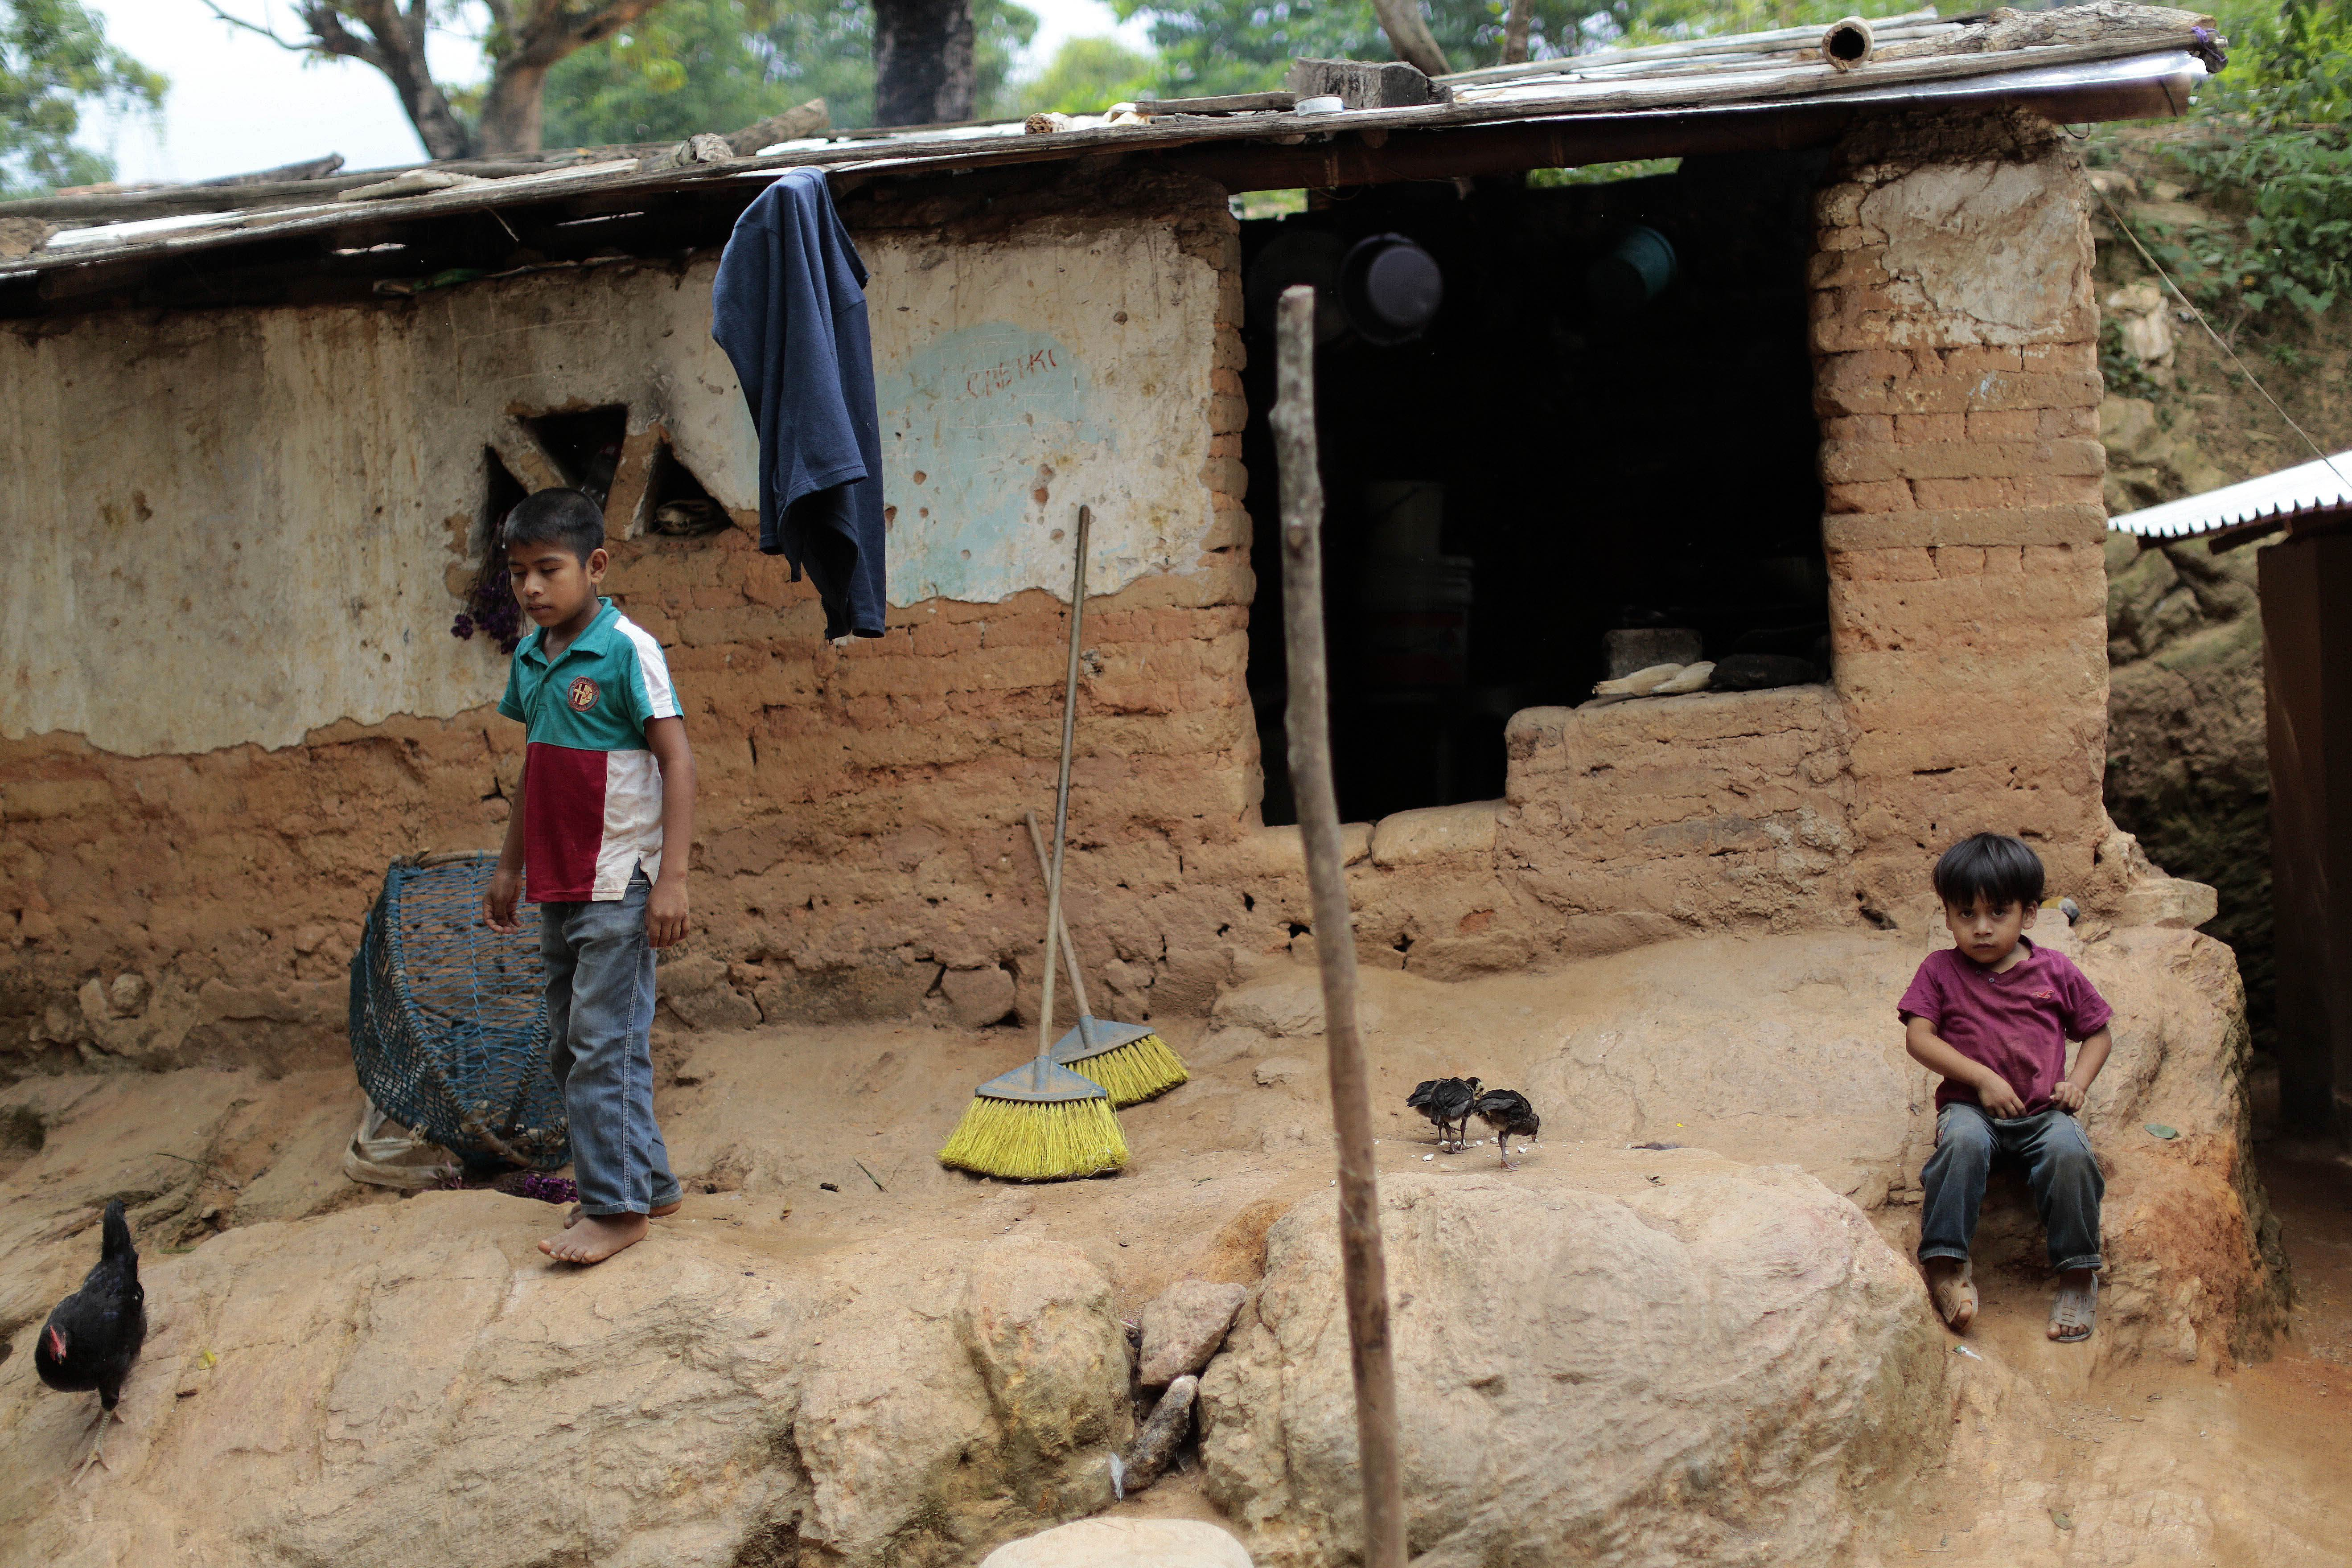 Children stay in front of their humble home in El Magueyito, Guerrero State, Mexico, on July 19. Poverty in Mexico has increased on the beginning of the presidential term of Enrique Pena Nieto with 2 million Mexicans joining this situation between 2012 and 2014, according to an official report released Thursday. | AFP-JIJI